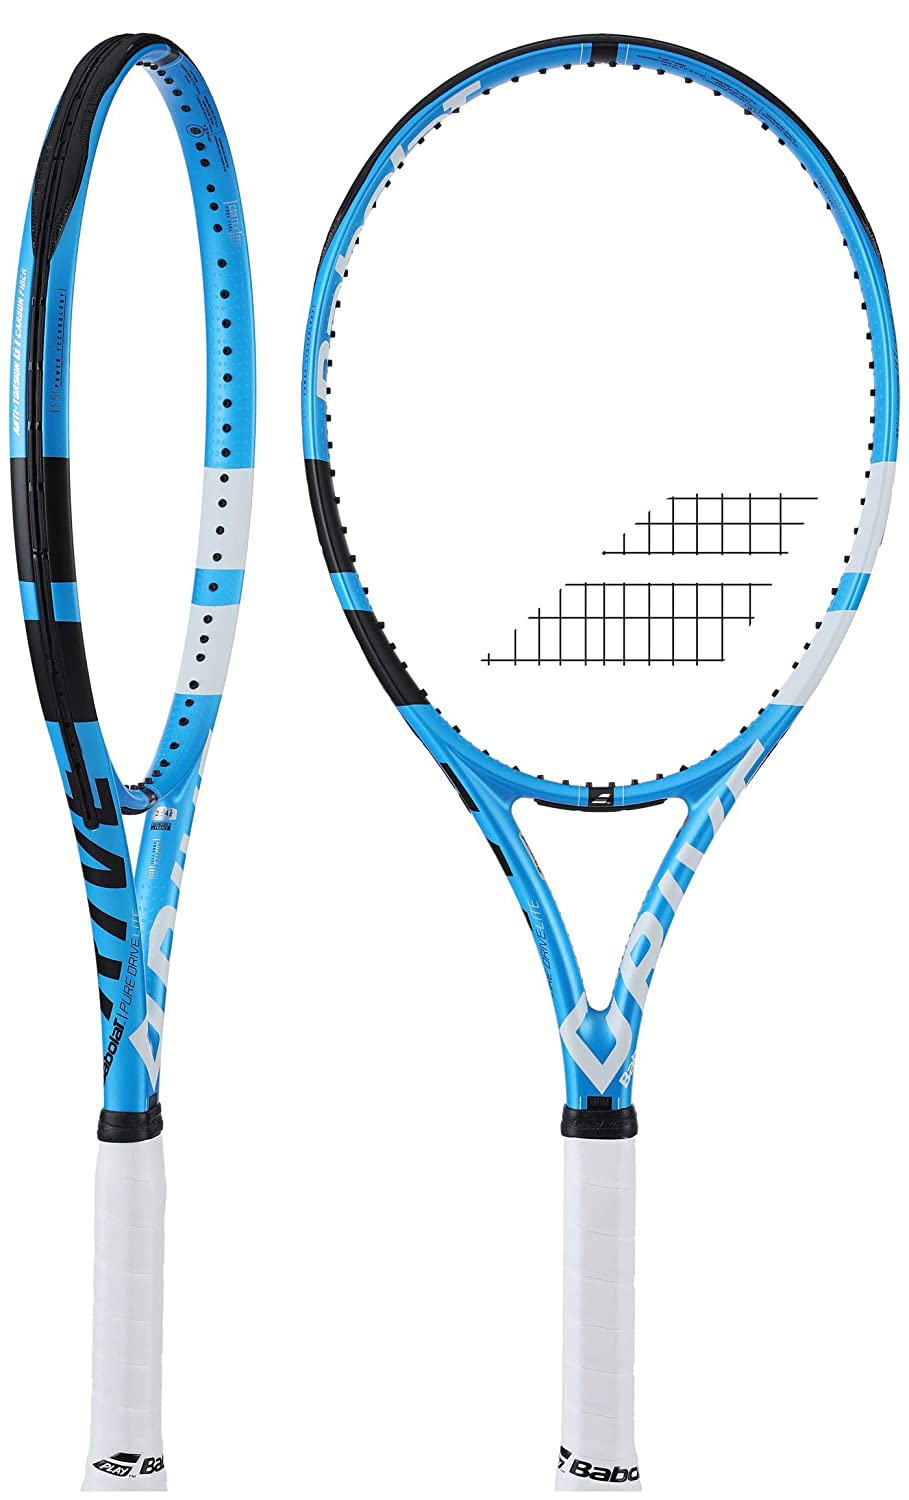 low priced 66c78 36ab1 Babolat 2018 Pure Drive Lite Tennis Racquet - Quality Babolat String